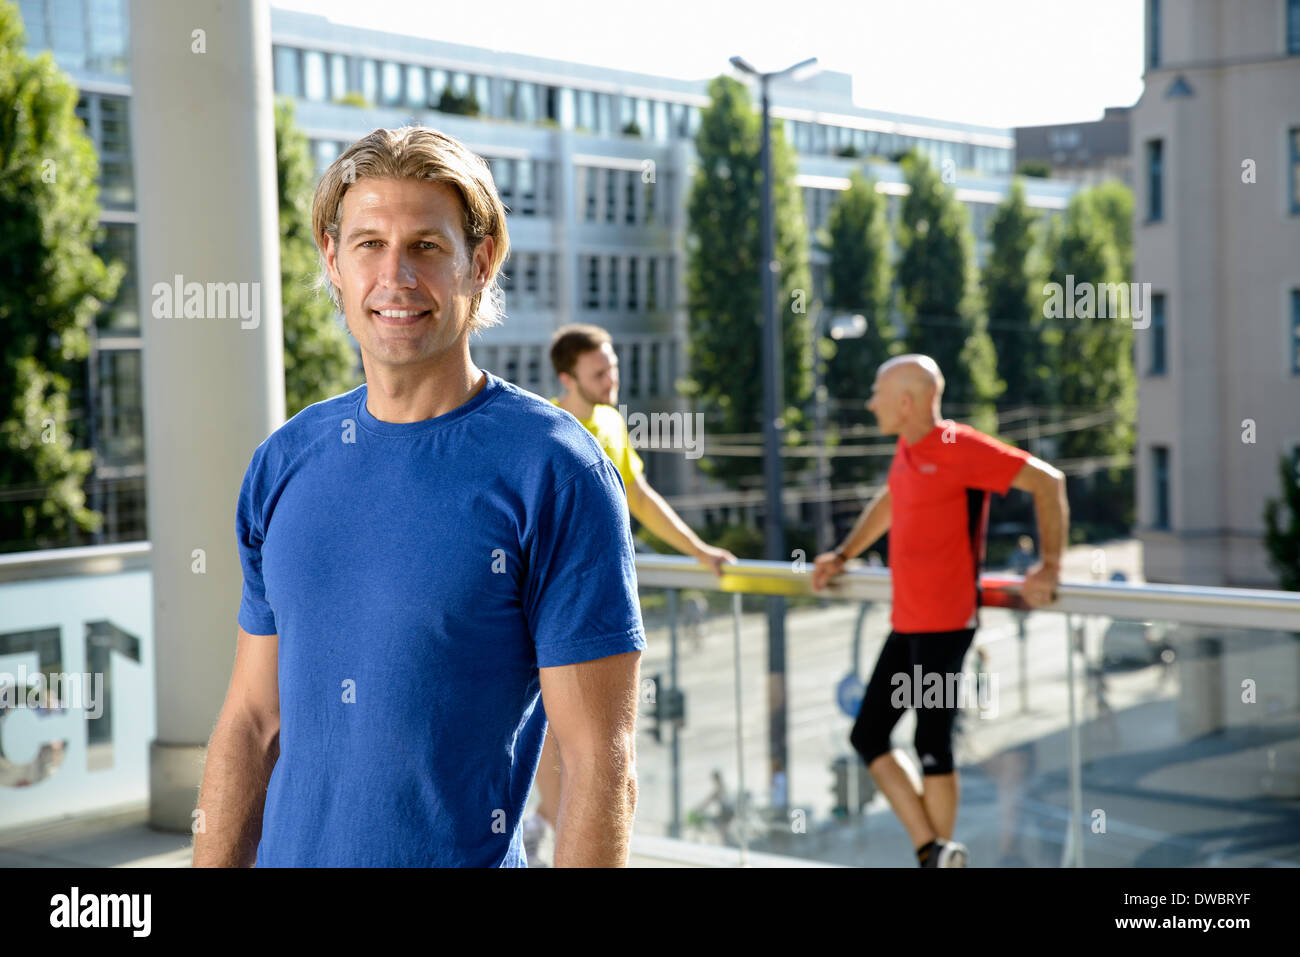 Mid adult male trainer and class taking a break on city rooftop - Stock Image